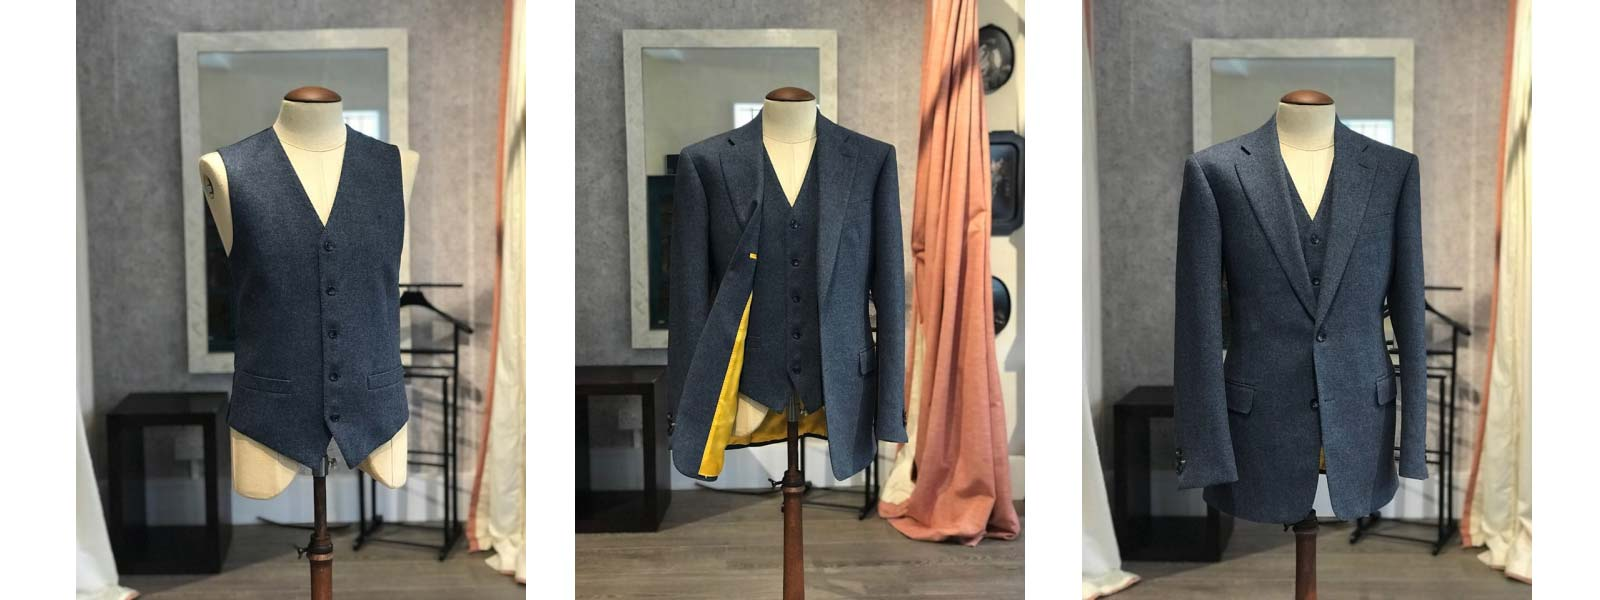 blue suit bespoke made to measure tailor london